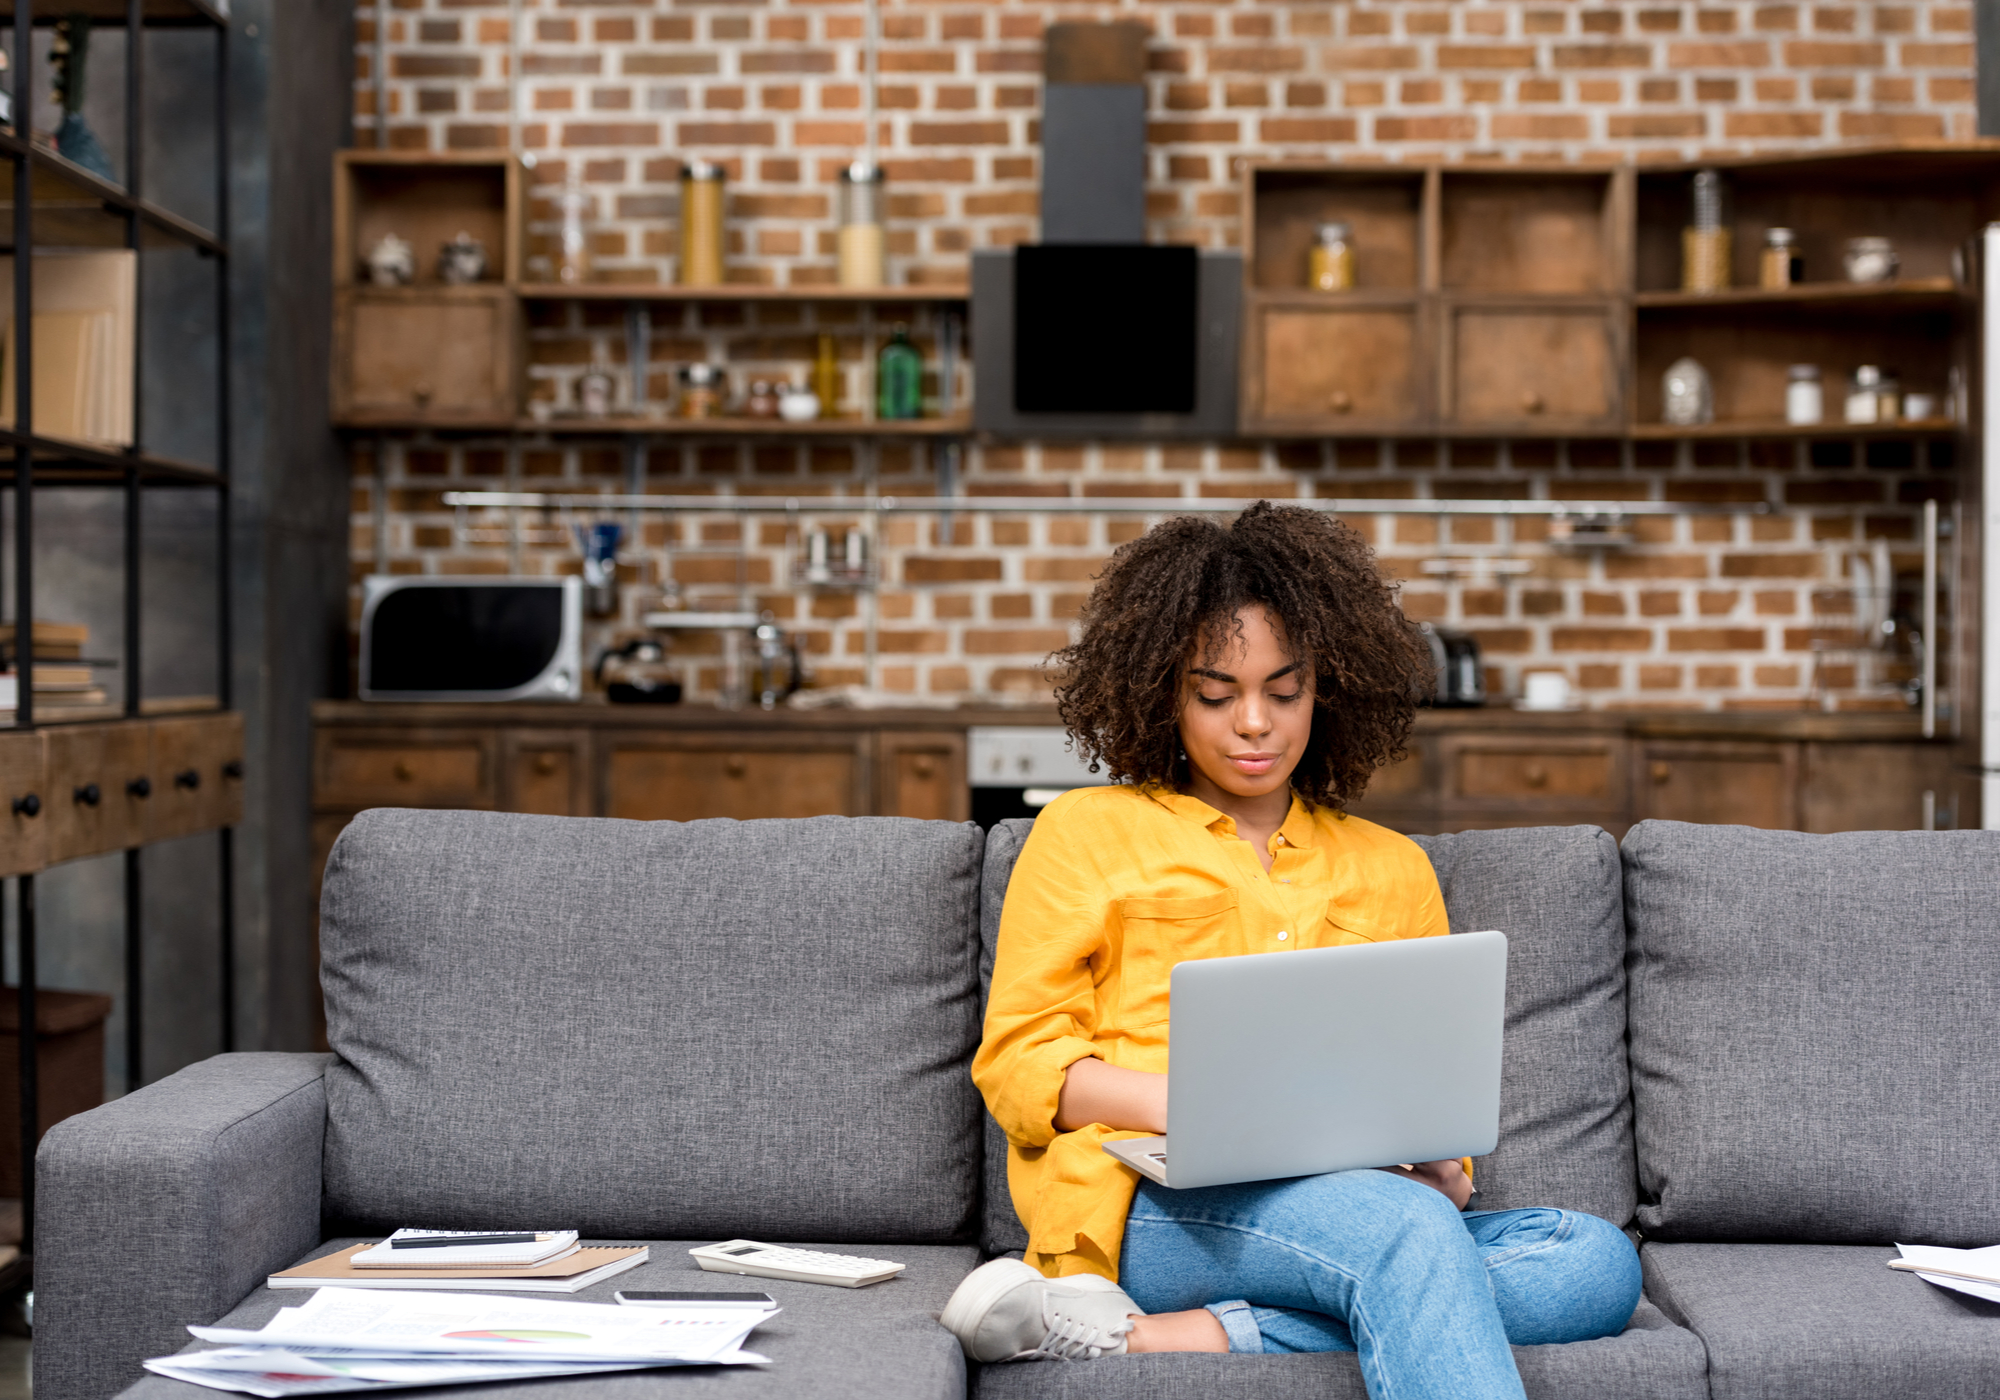 Remote working is here to stay and it's boosting productivity, study finds